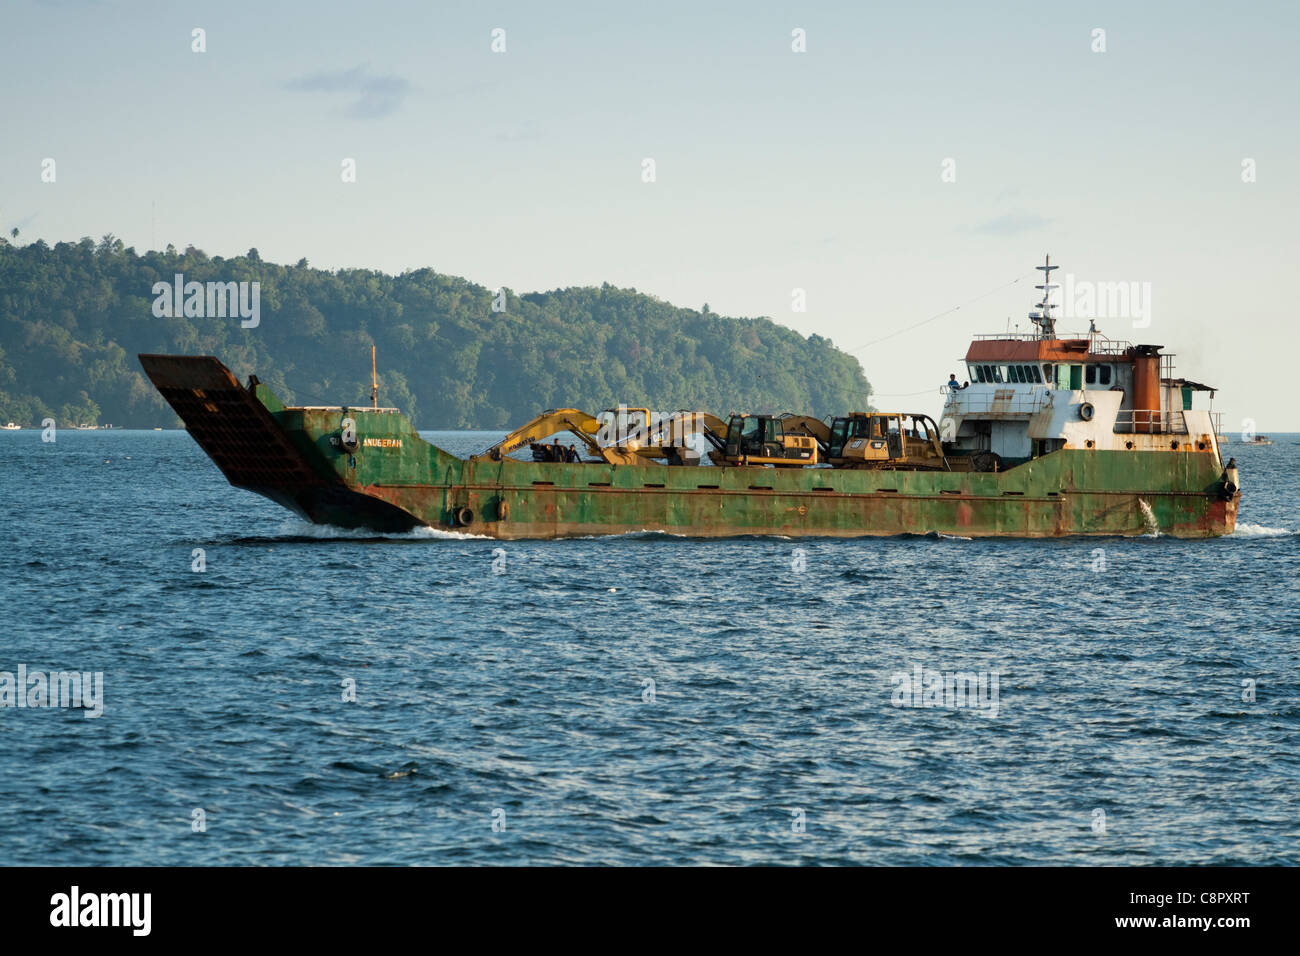 Transporter or cargo ship carrying bulldozers, Ambon, Indonesia, Asia - Stock Image